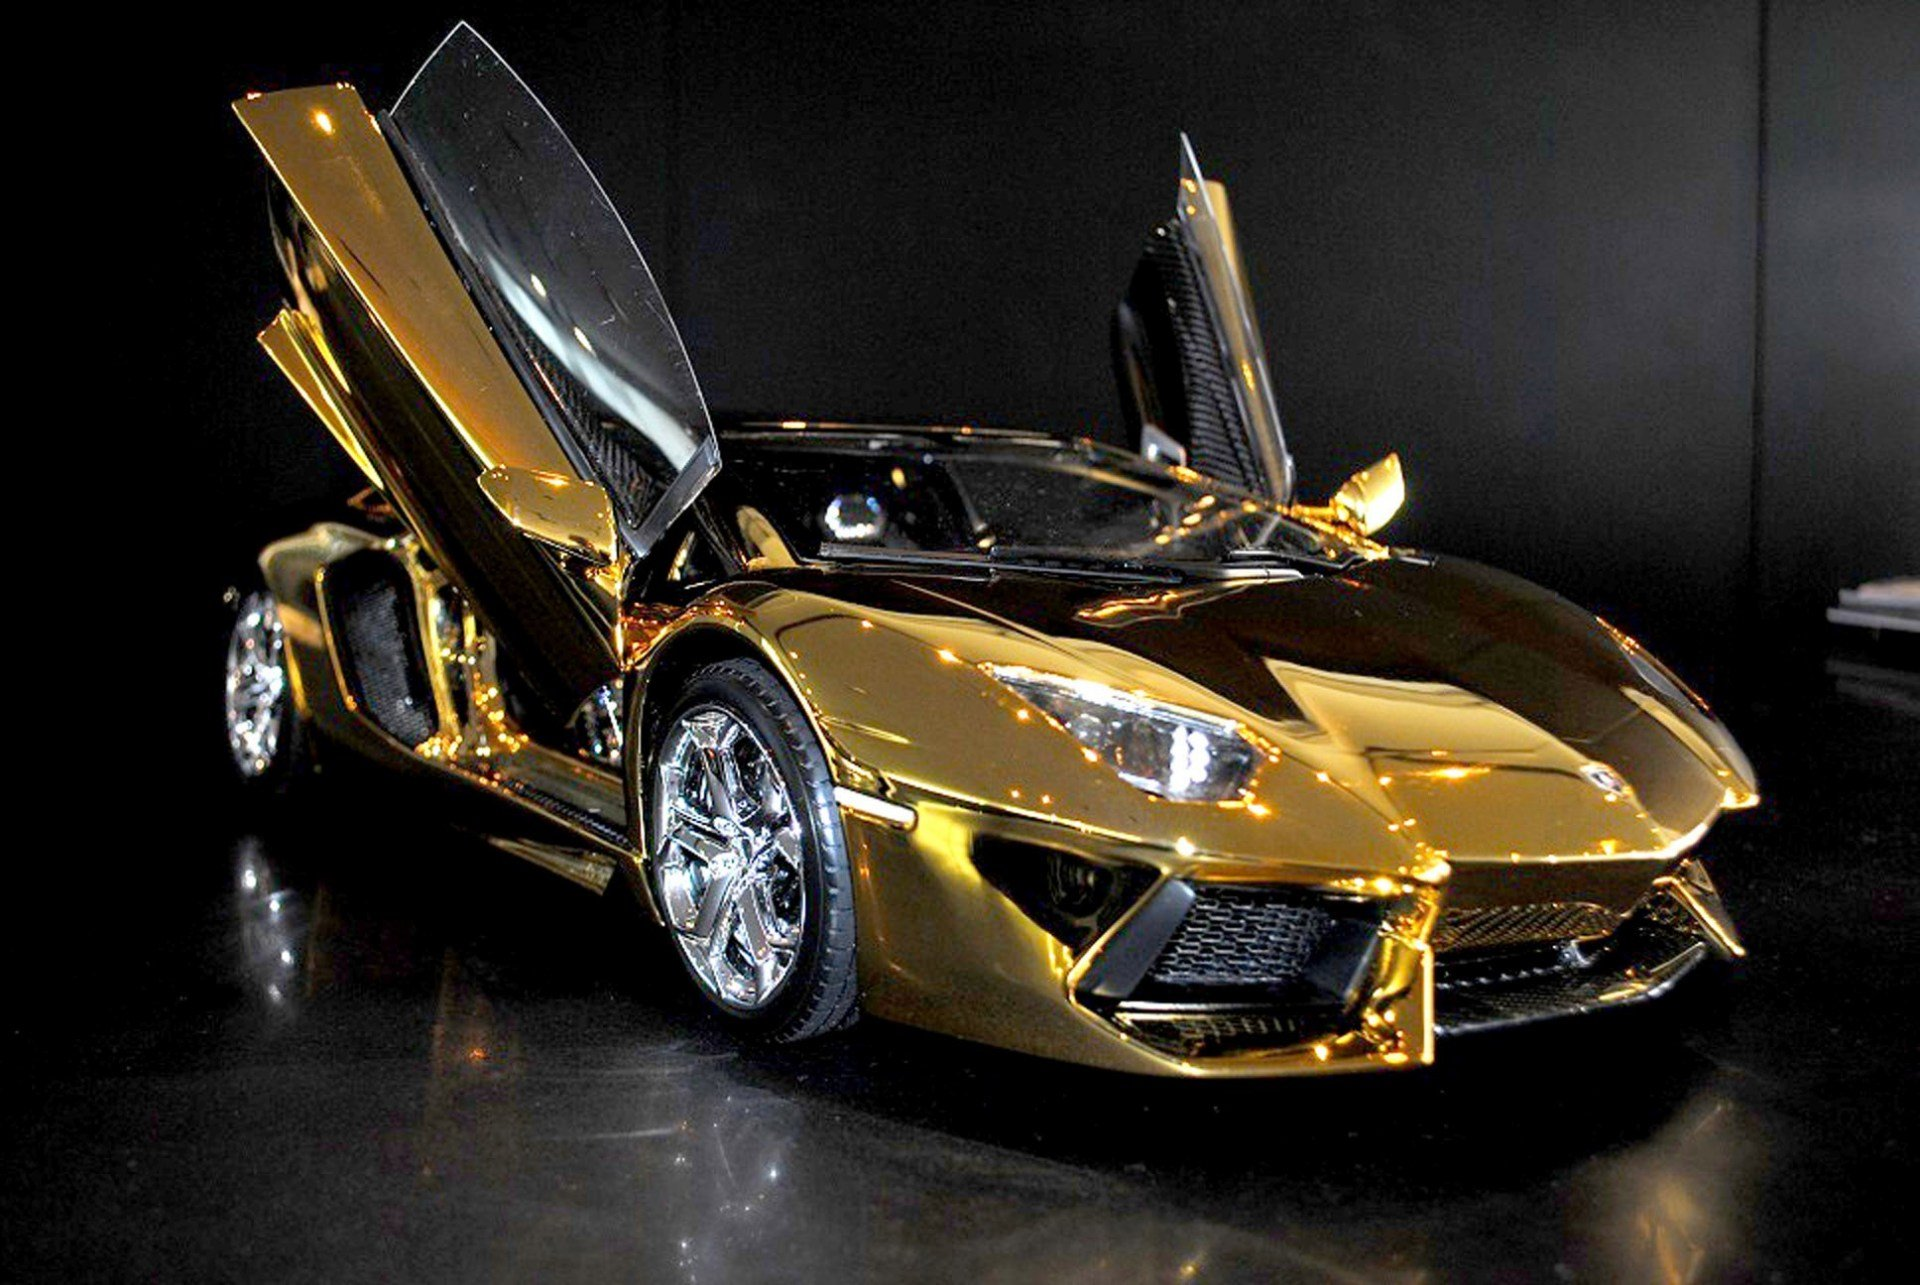 New A Solid Gold Lamborghini And 6 Other Supercars New York Post On This Month